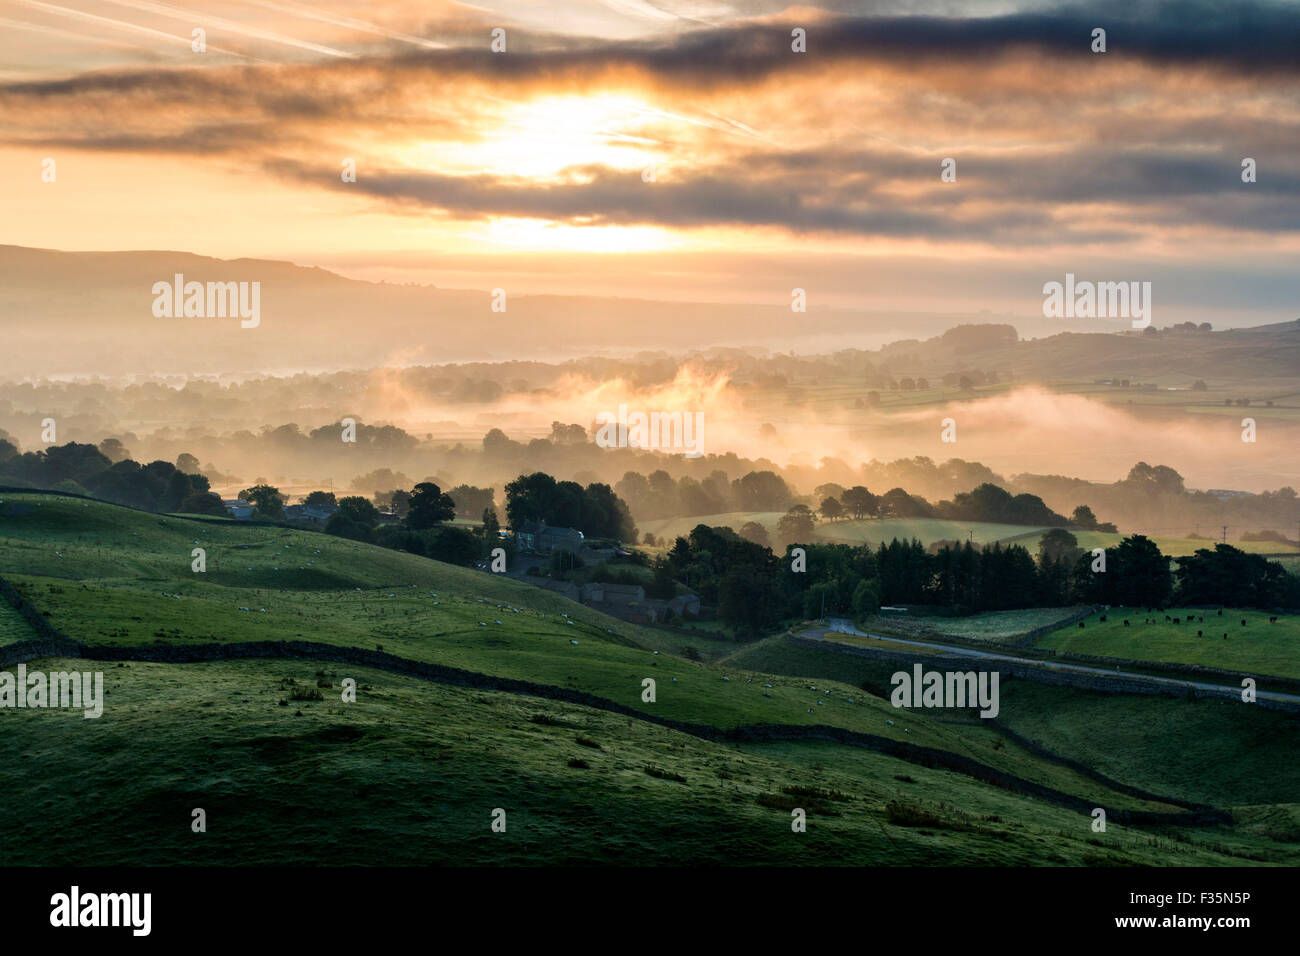 Kirkcarrion, Lunedale, Teesdale, County Durham. Wednesday 30th September 2015, UK Weather. It was another cool and Stock Photo